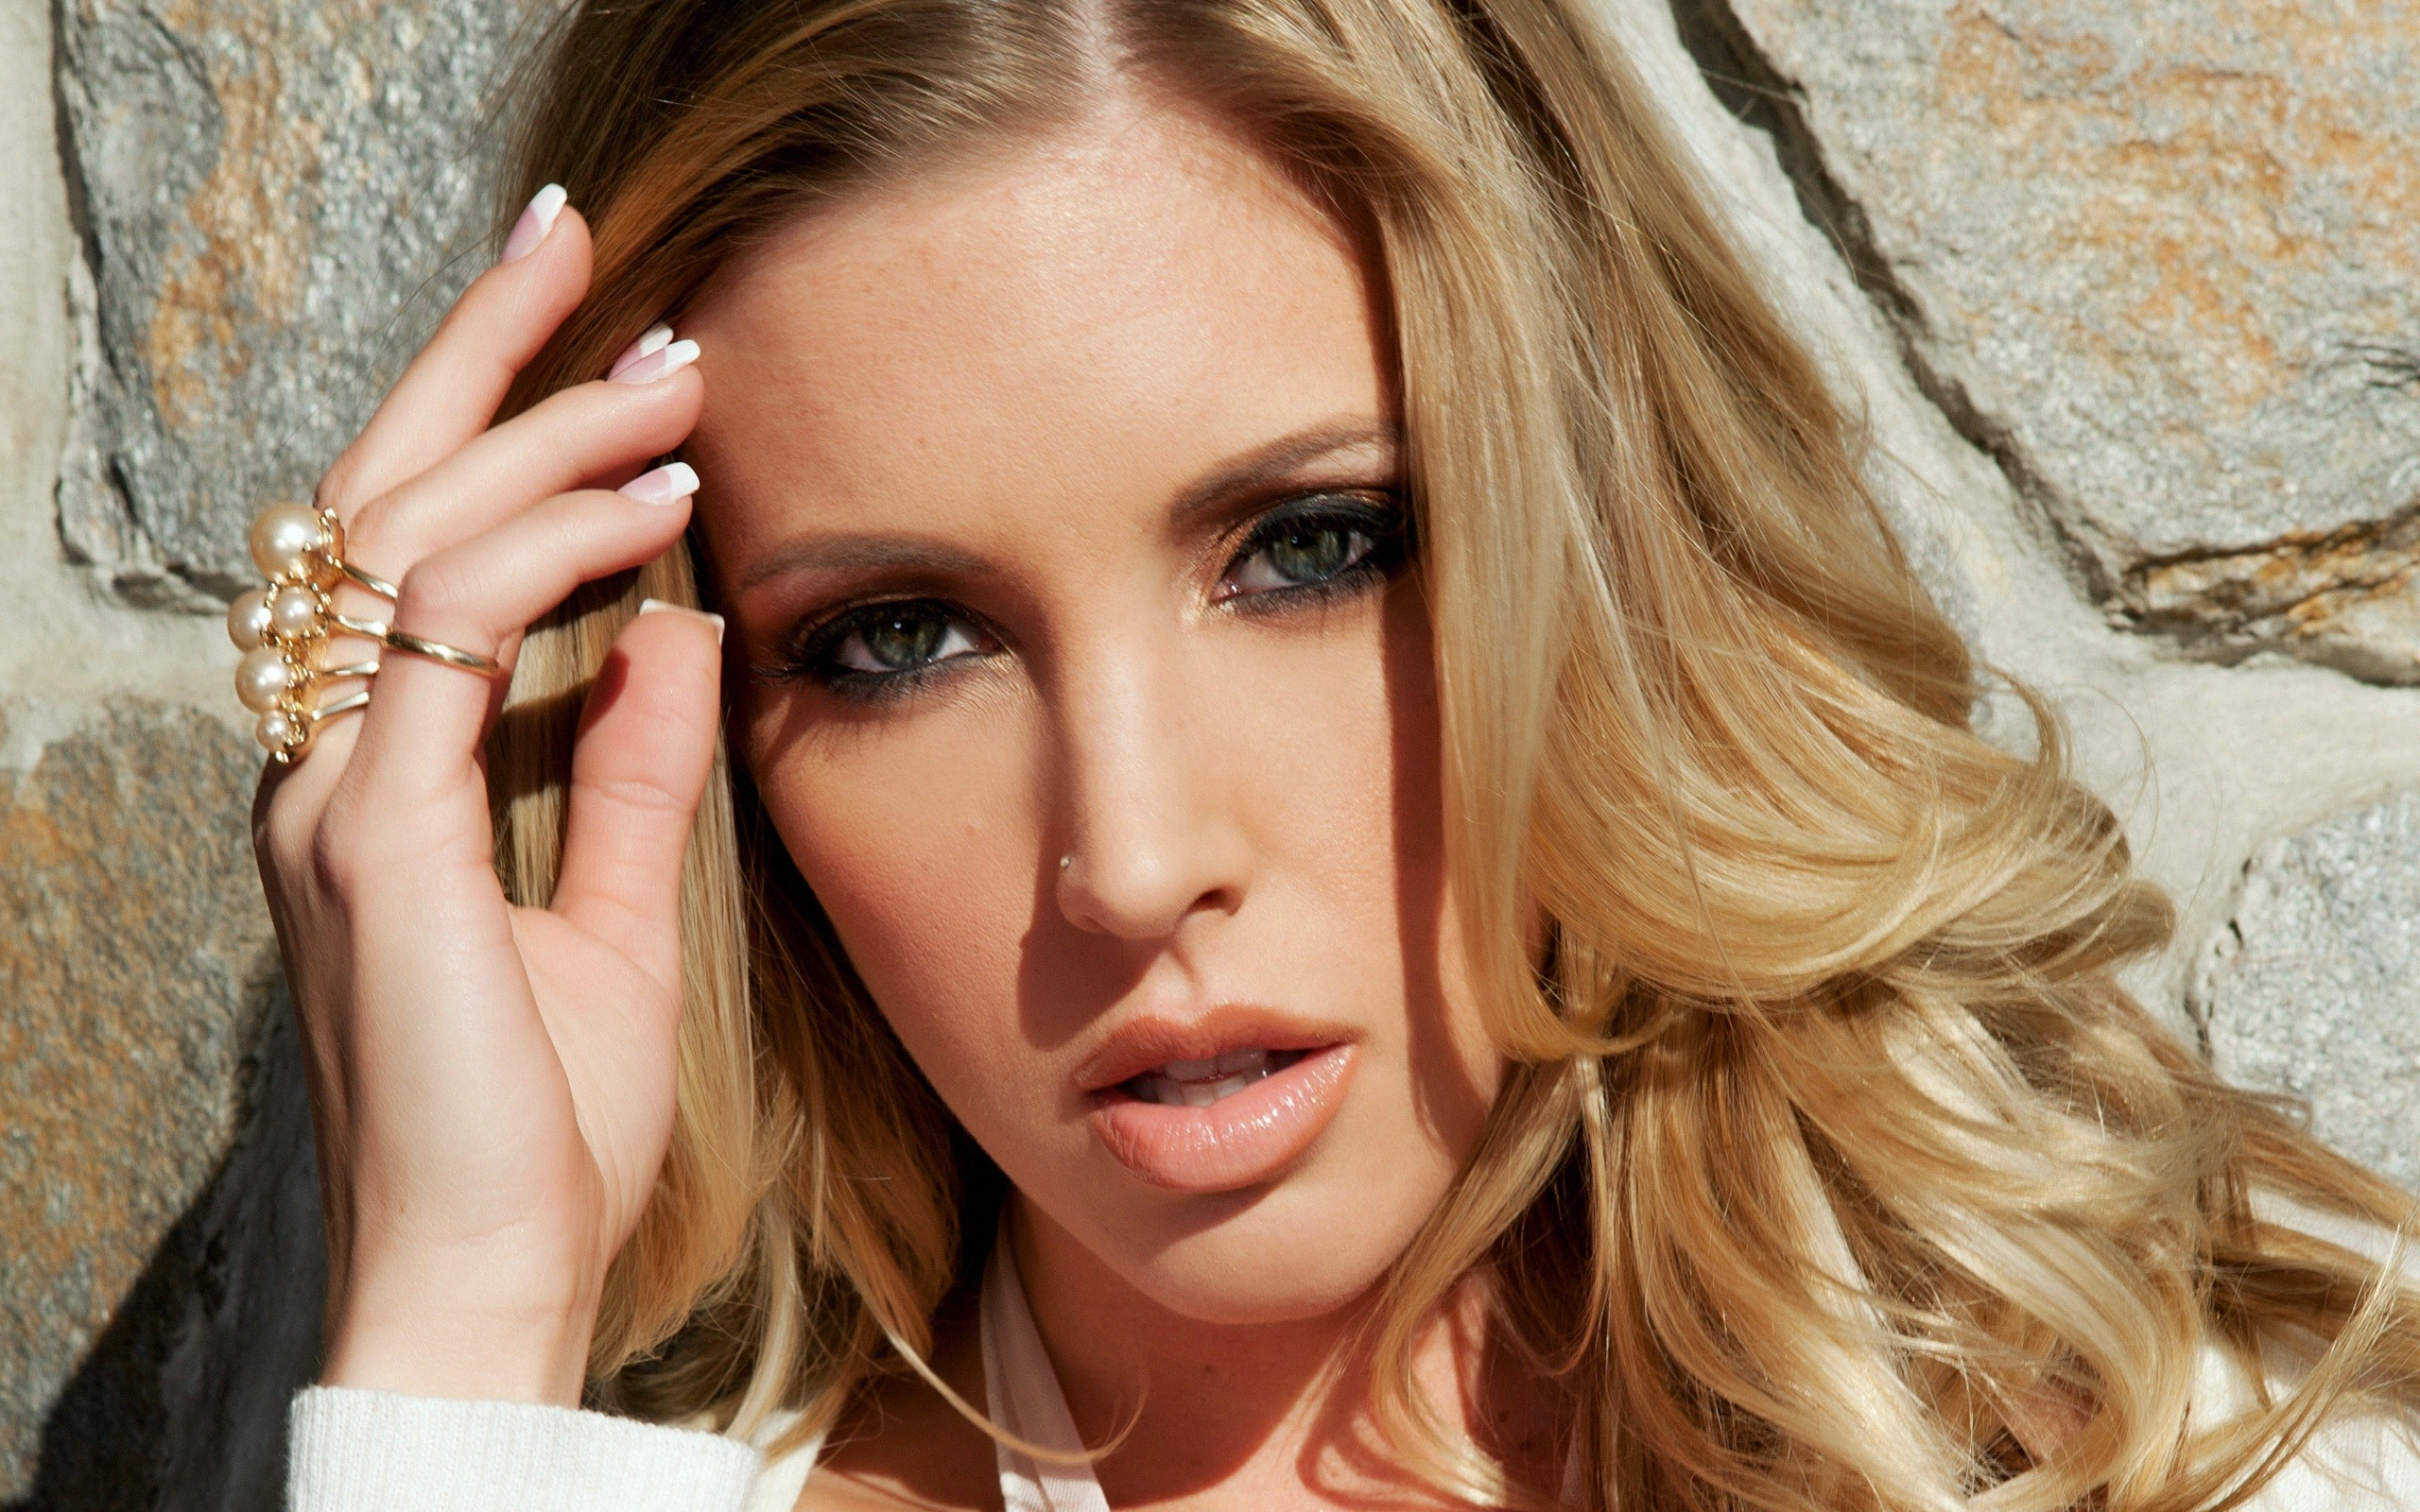 samantha saint face background wallpaper 68343